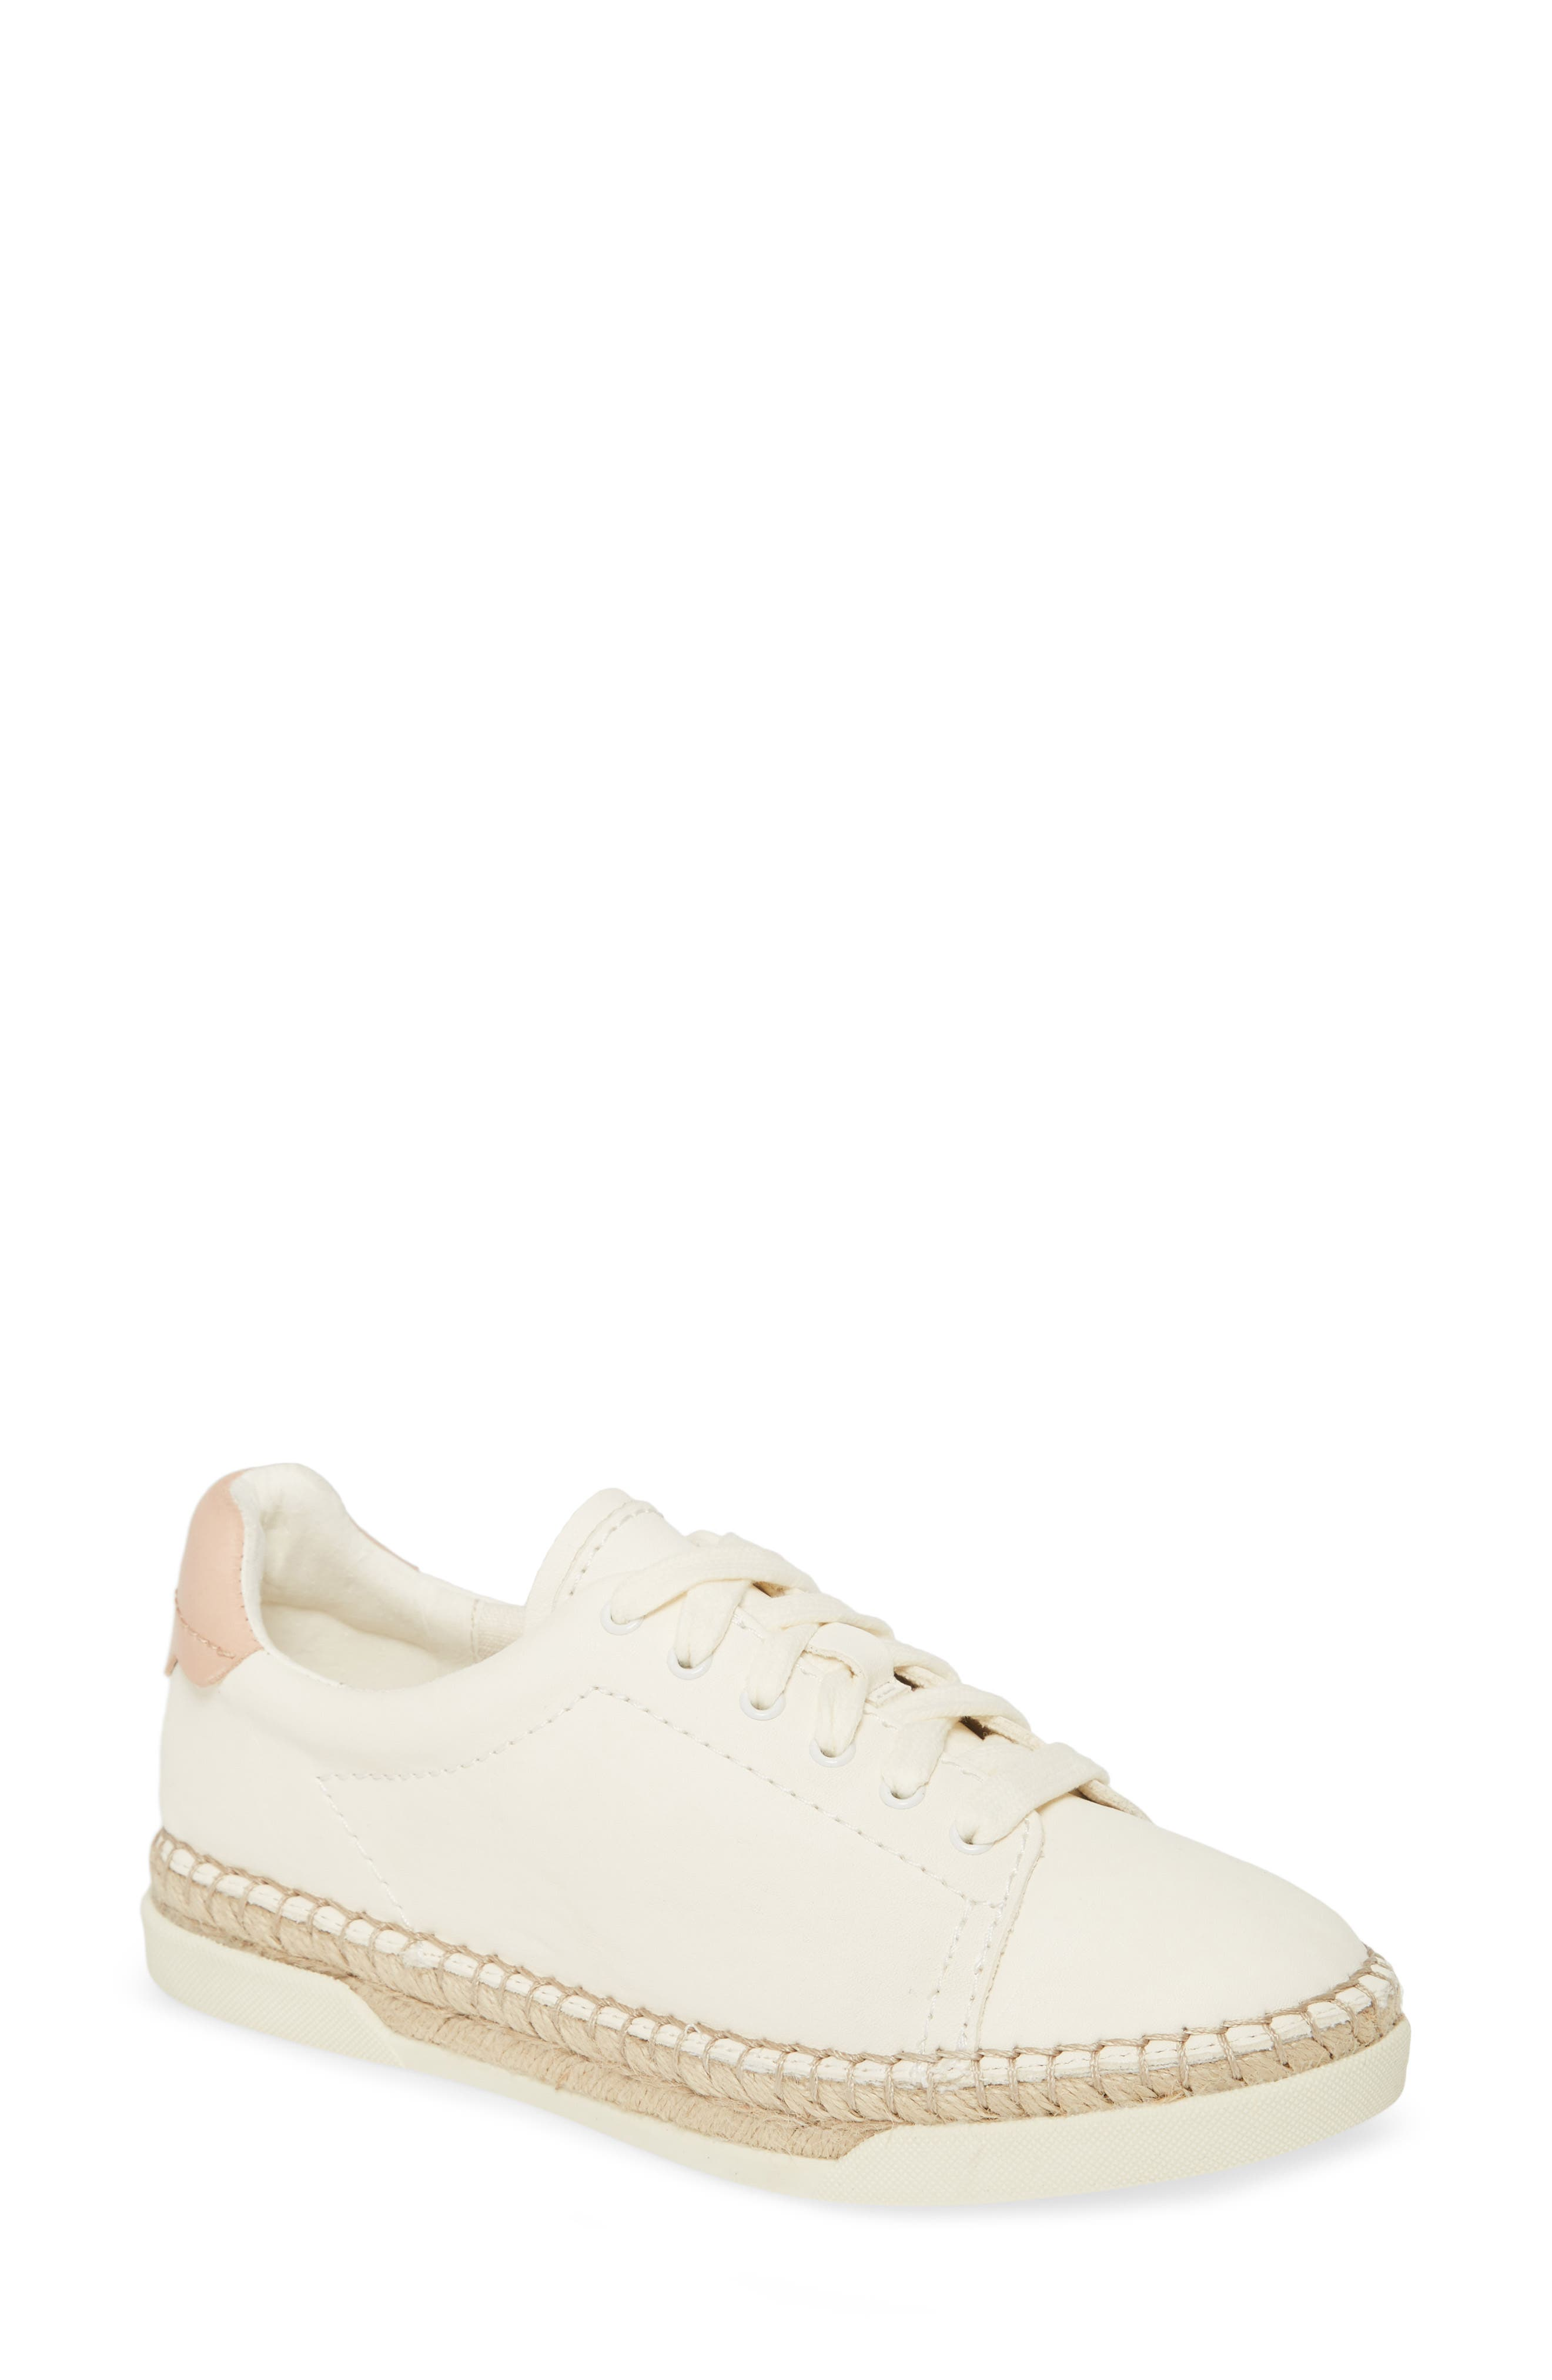 Madox Leather Low Top Sneakers In White